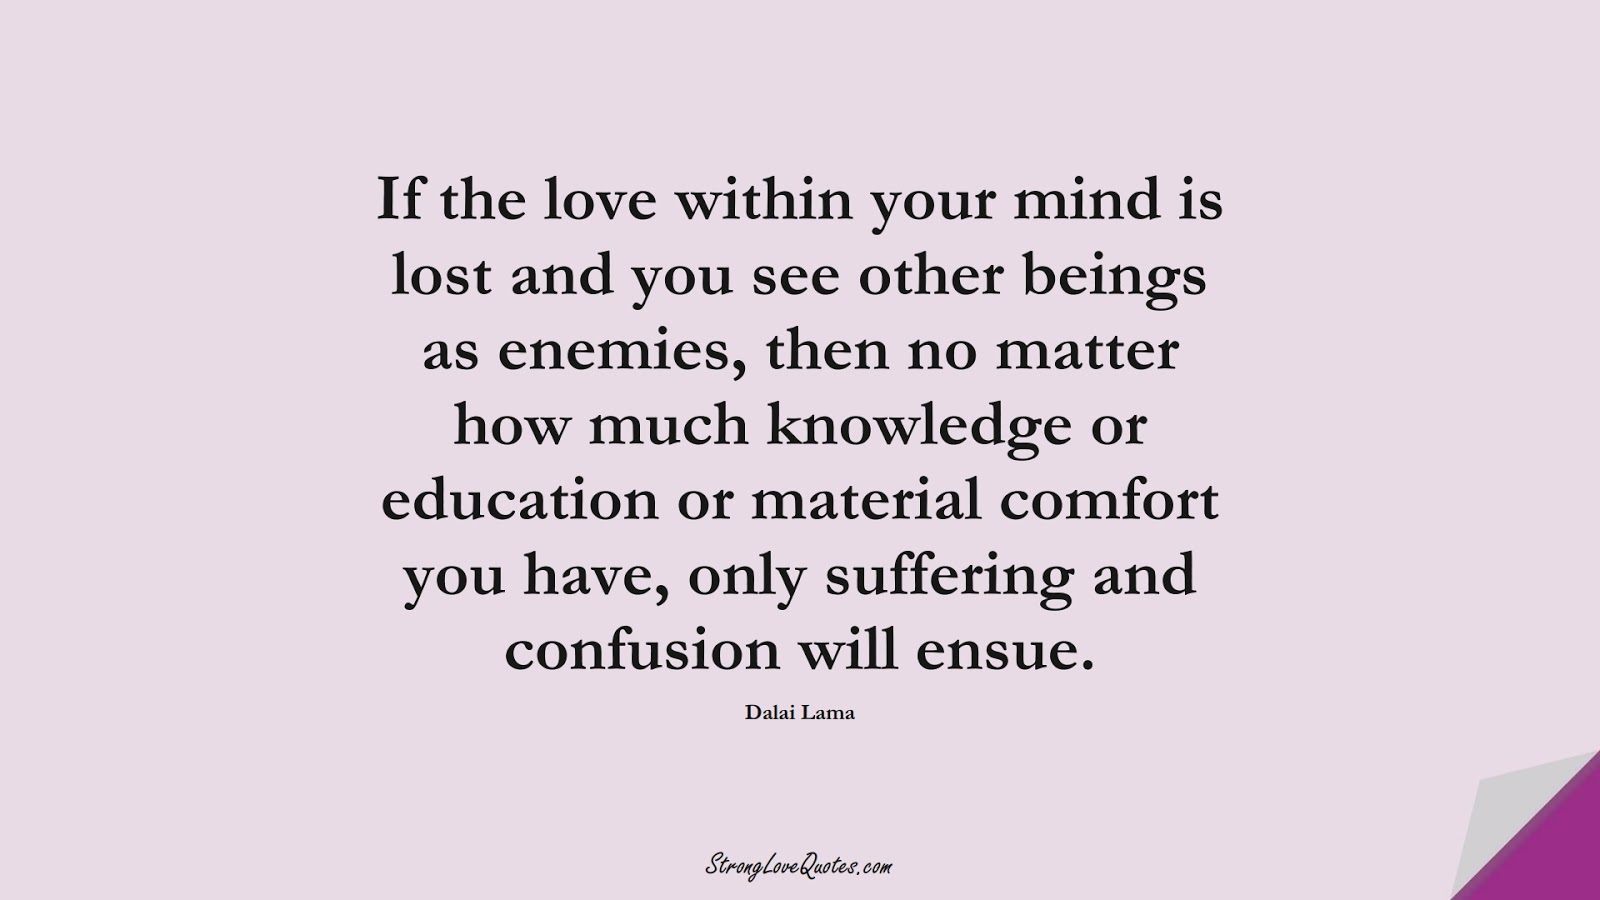 If the love within your mind is lost and you see other beings as enemies, then no matter how much knowledge or education or material comfort you have, only suffering and confusion will ensue. (Dalai Lama);  #KnowledgeQuotes